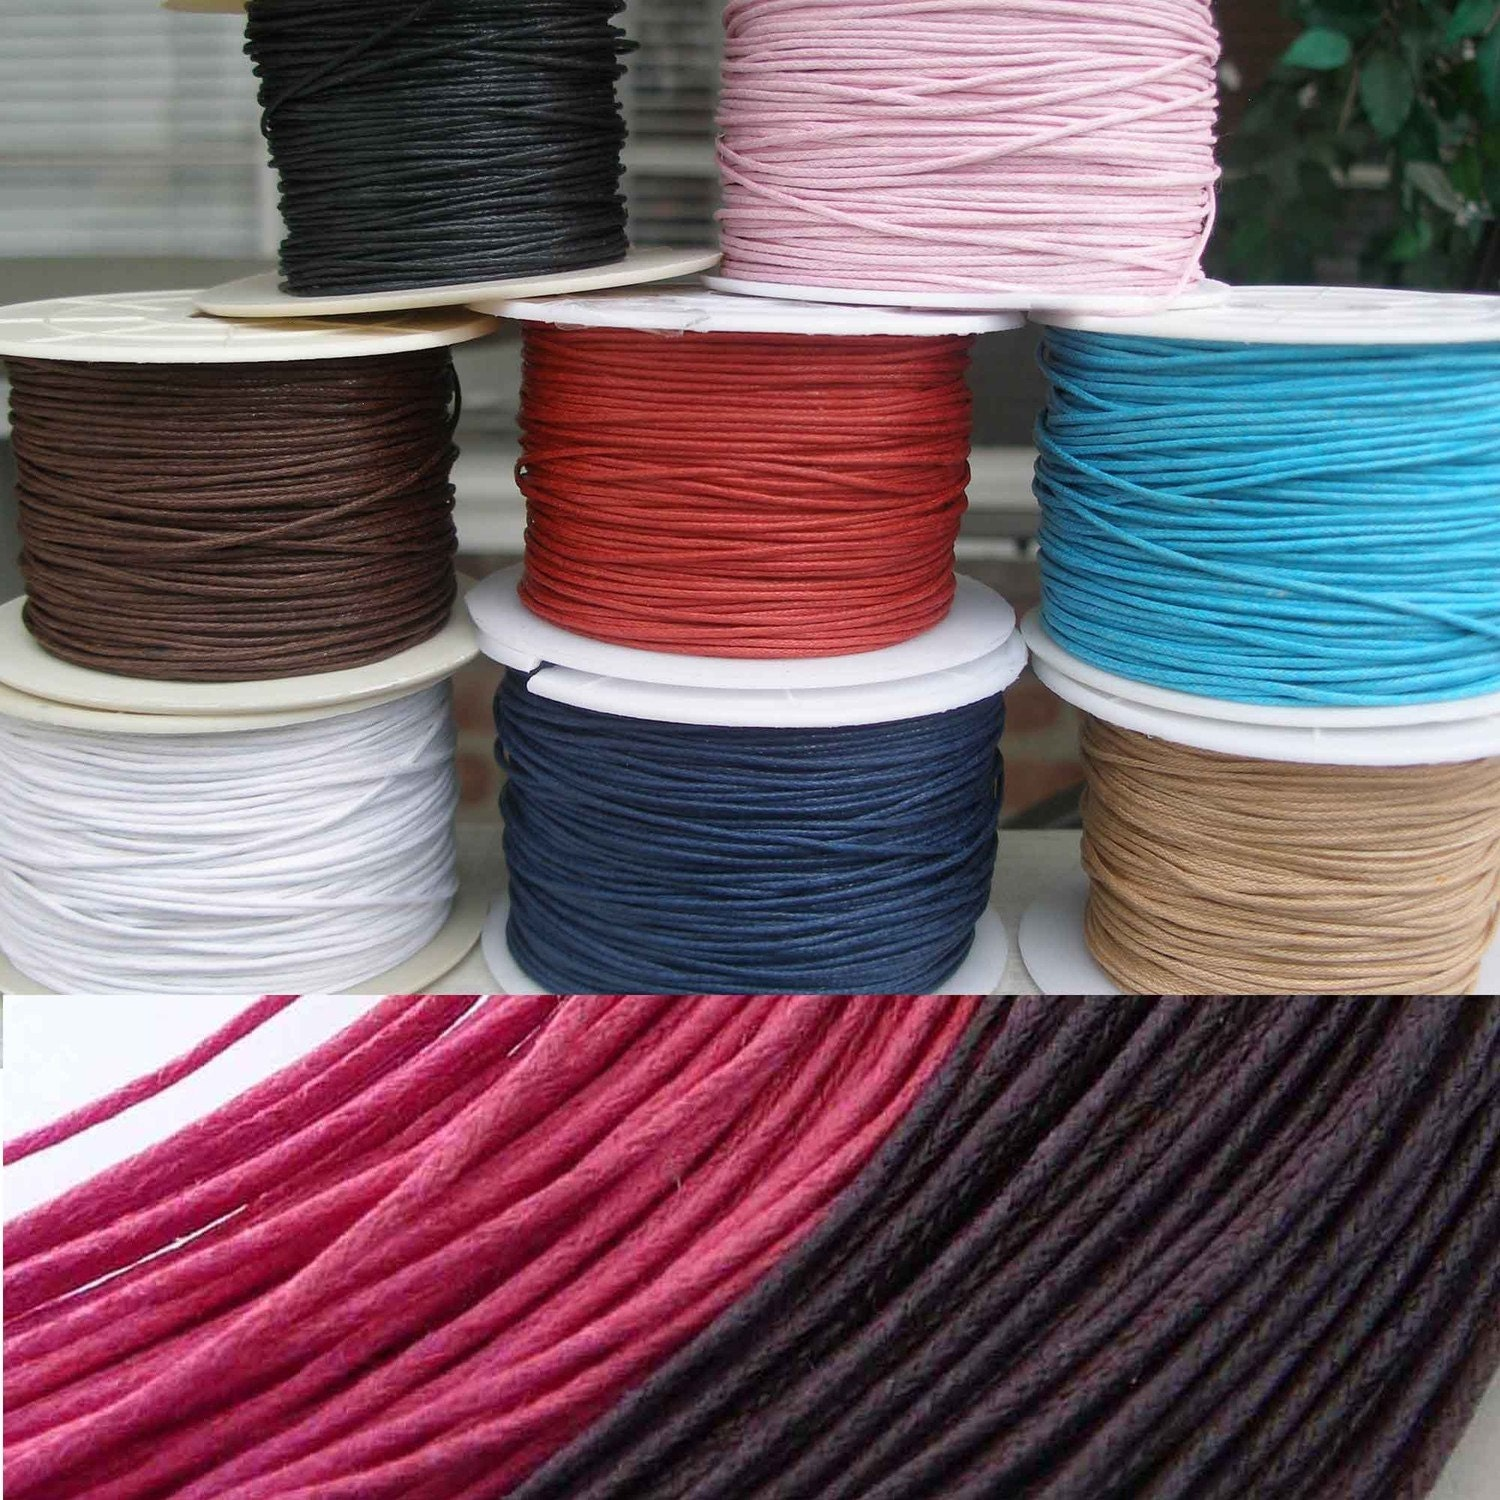 Necklace Cords Multi-Strand Waxed Cotton 20pc - Any length - 6 colors for Tile Pendants/Aanraku Bails